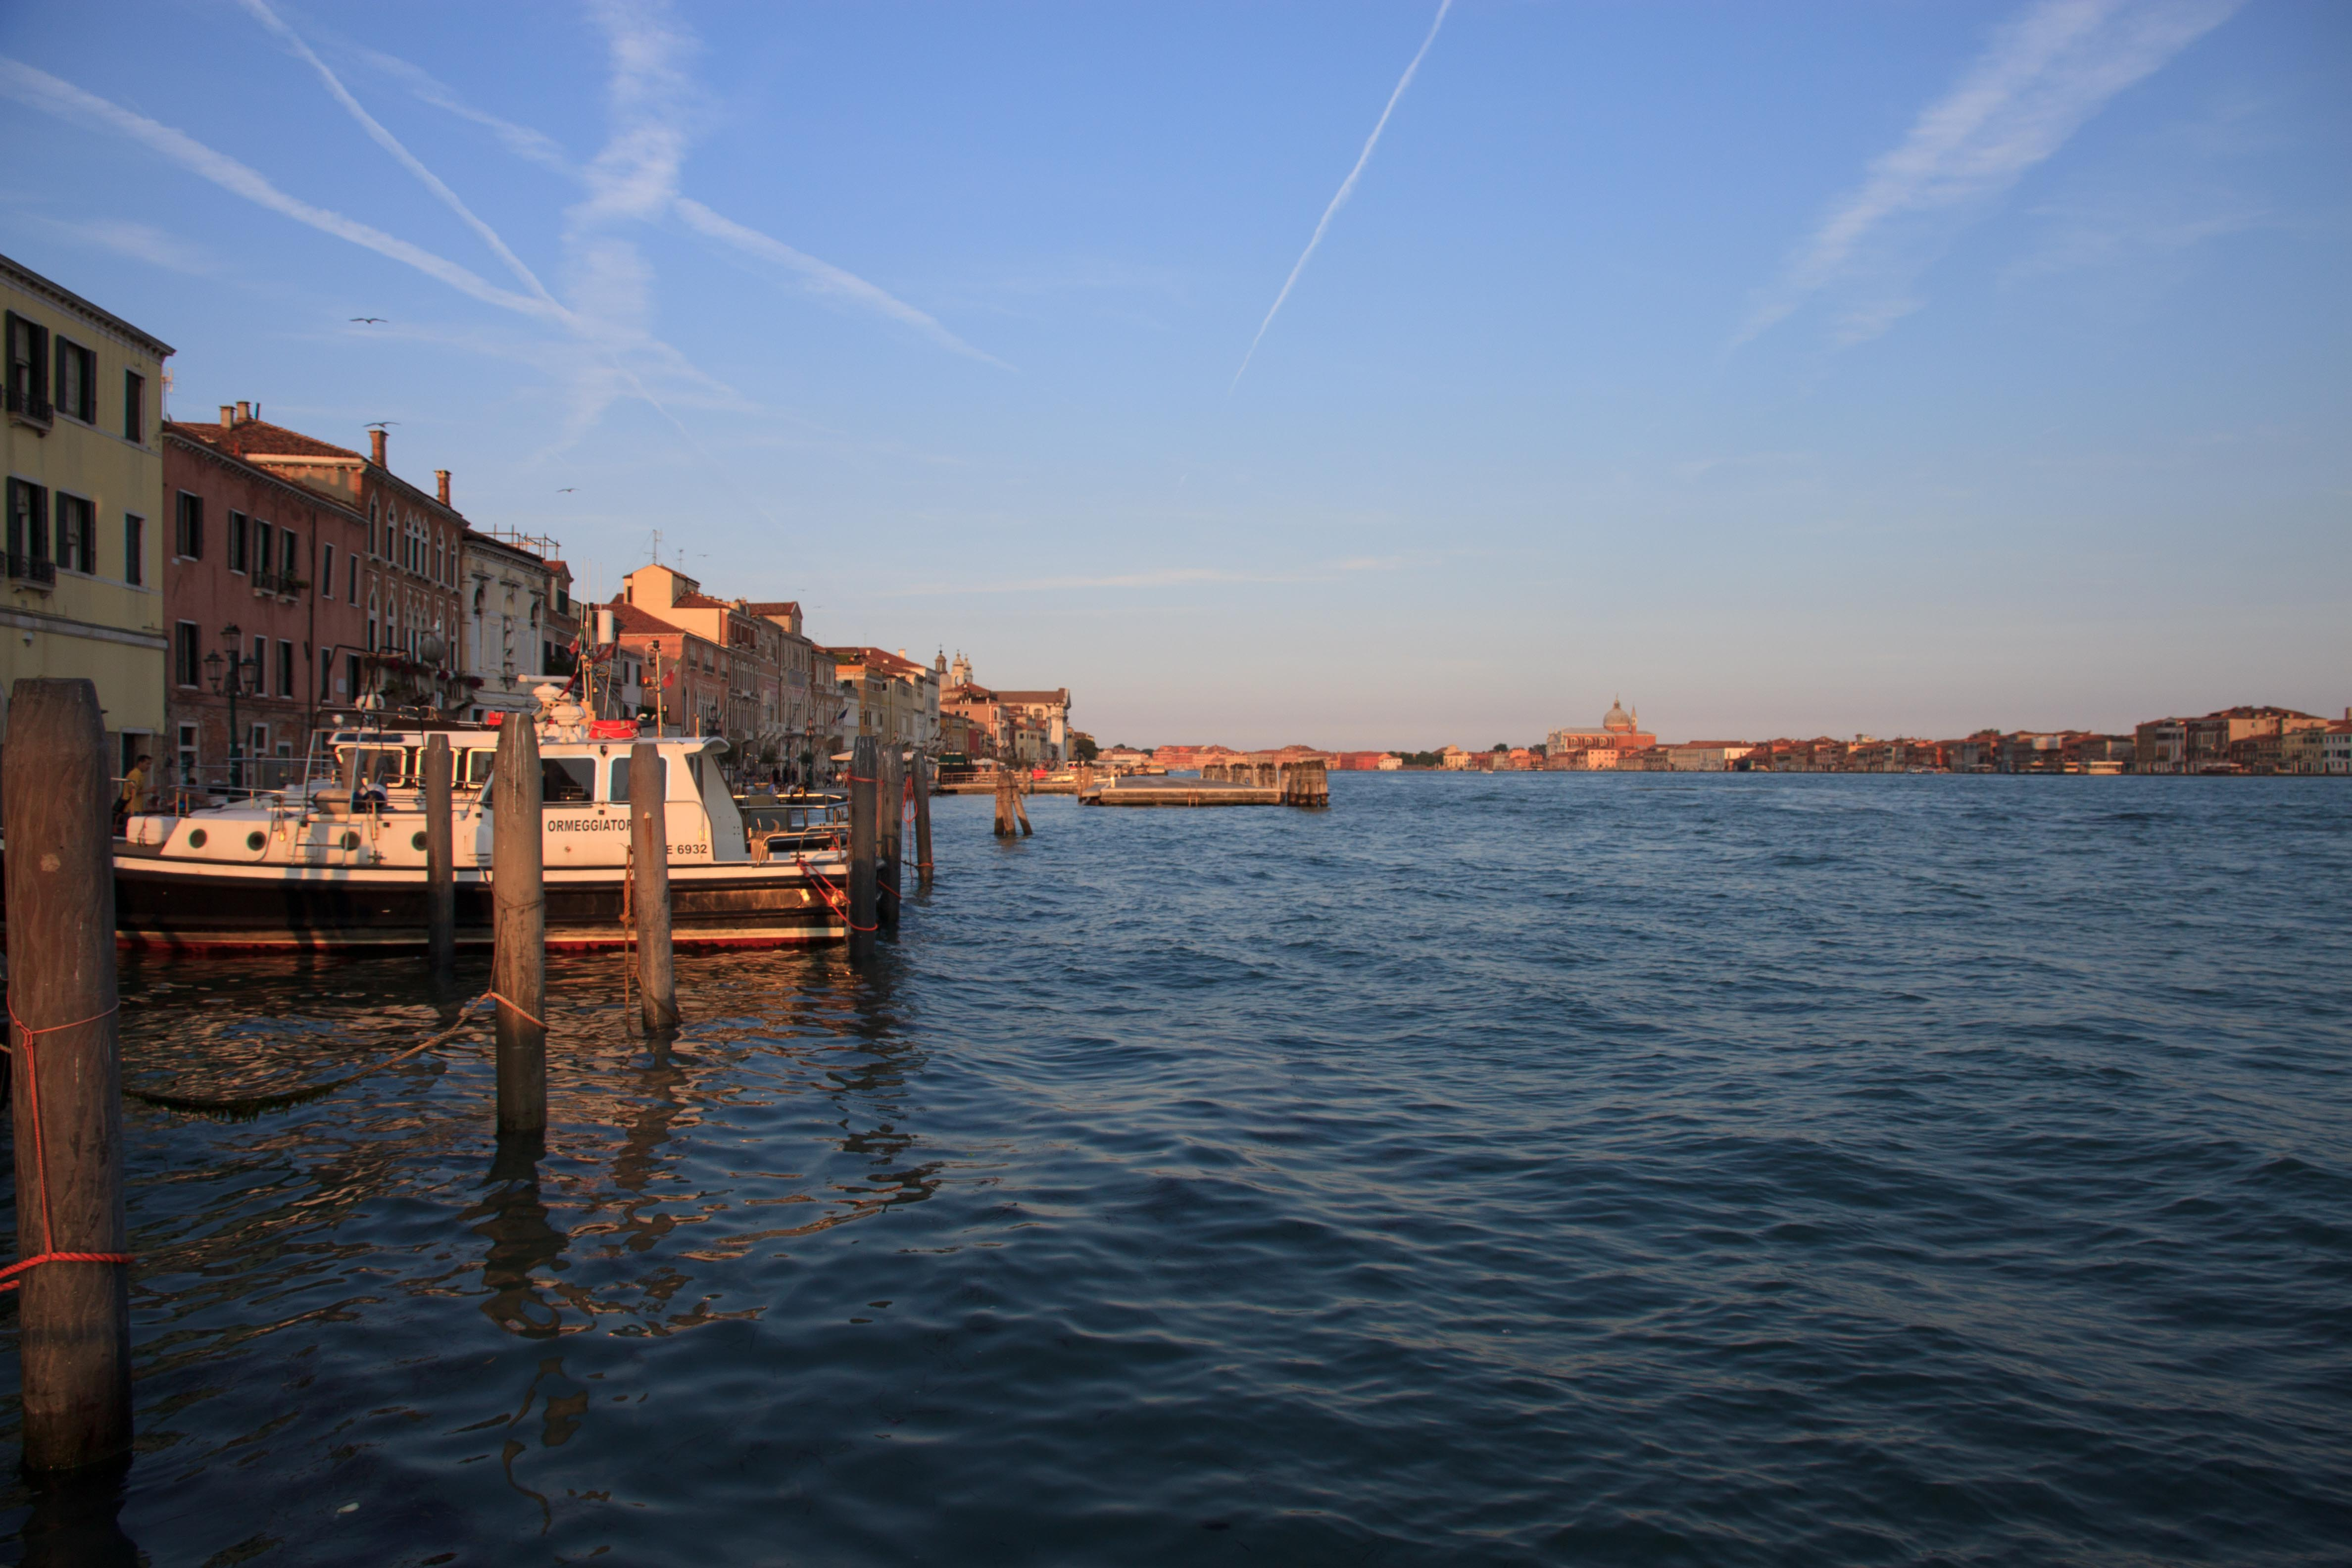 IMG_1590_Low-Res